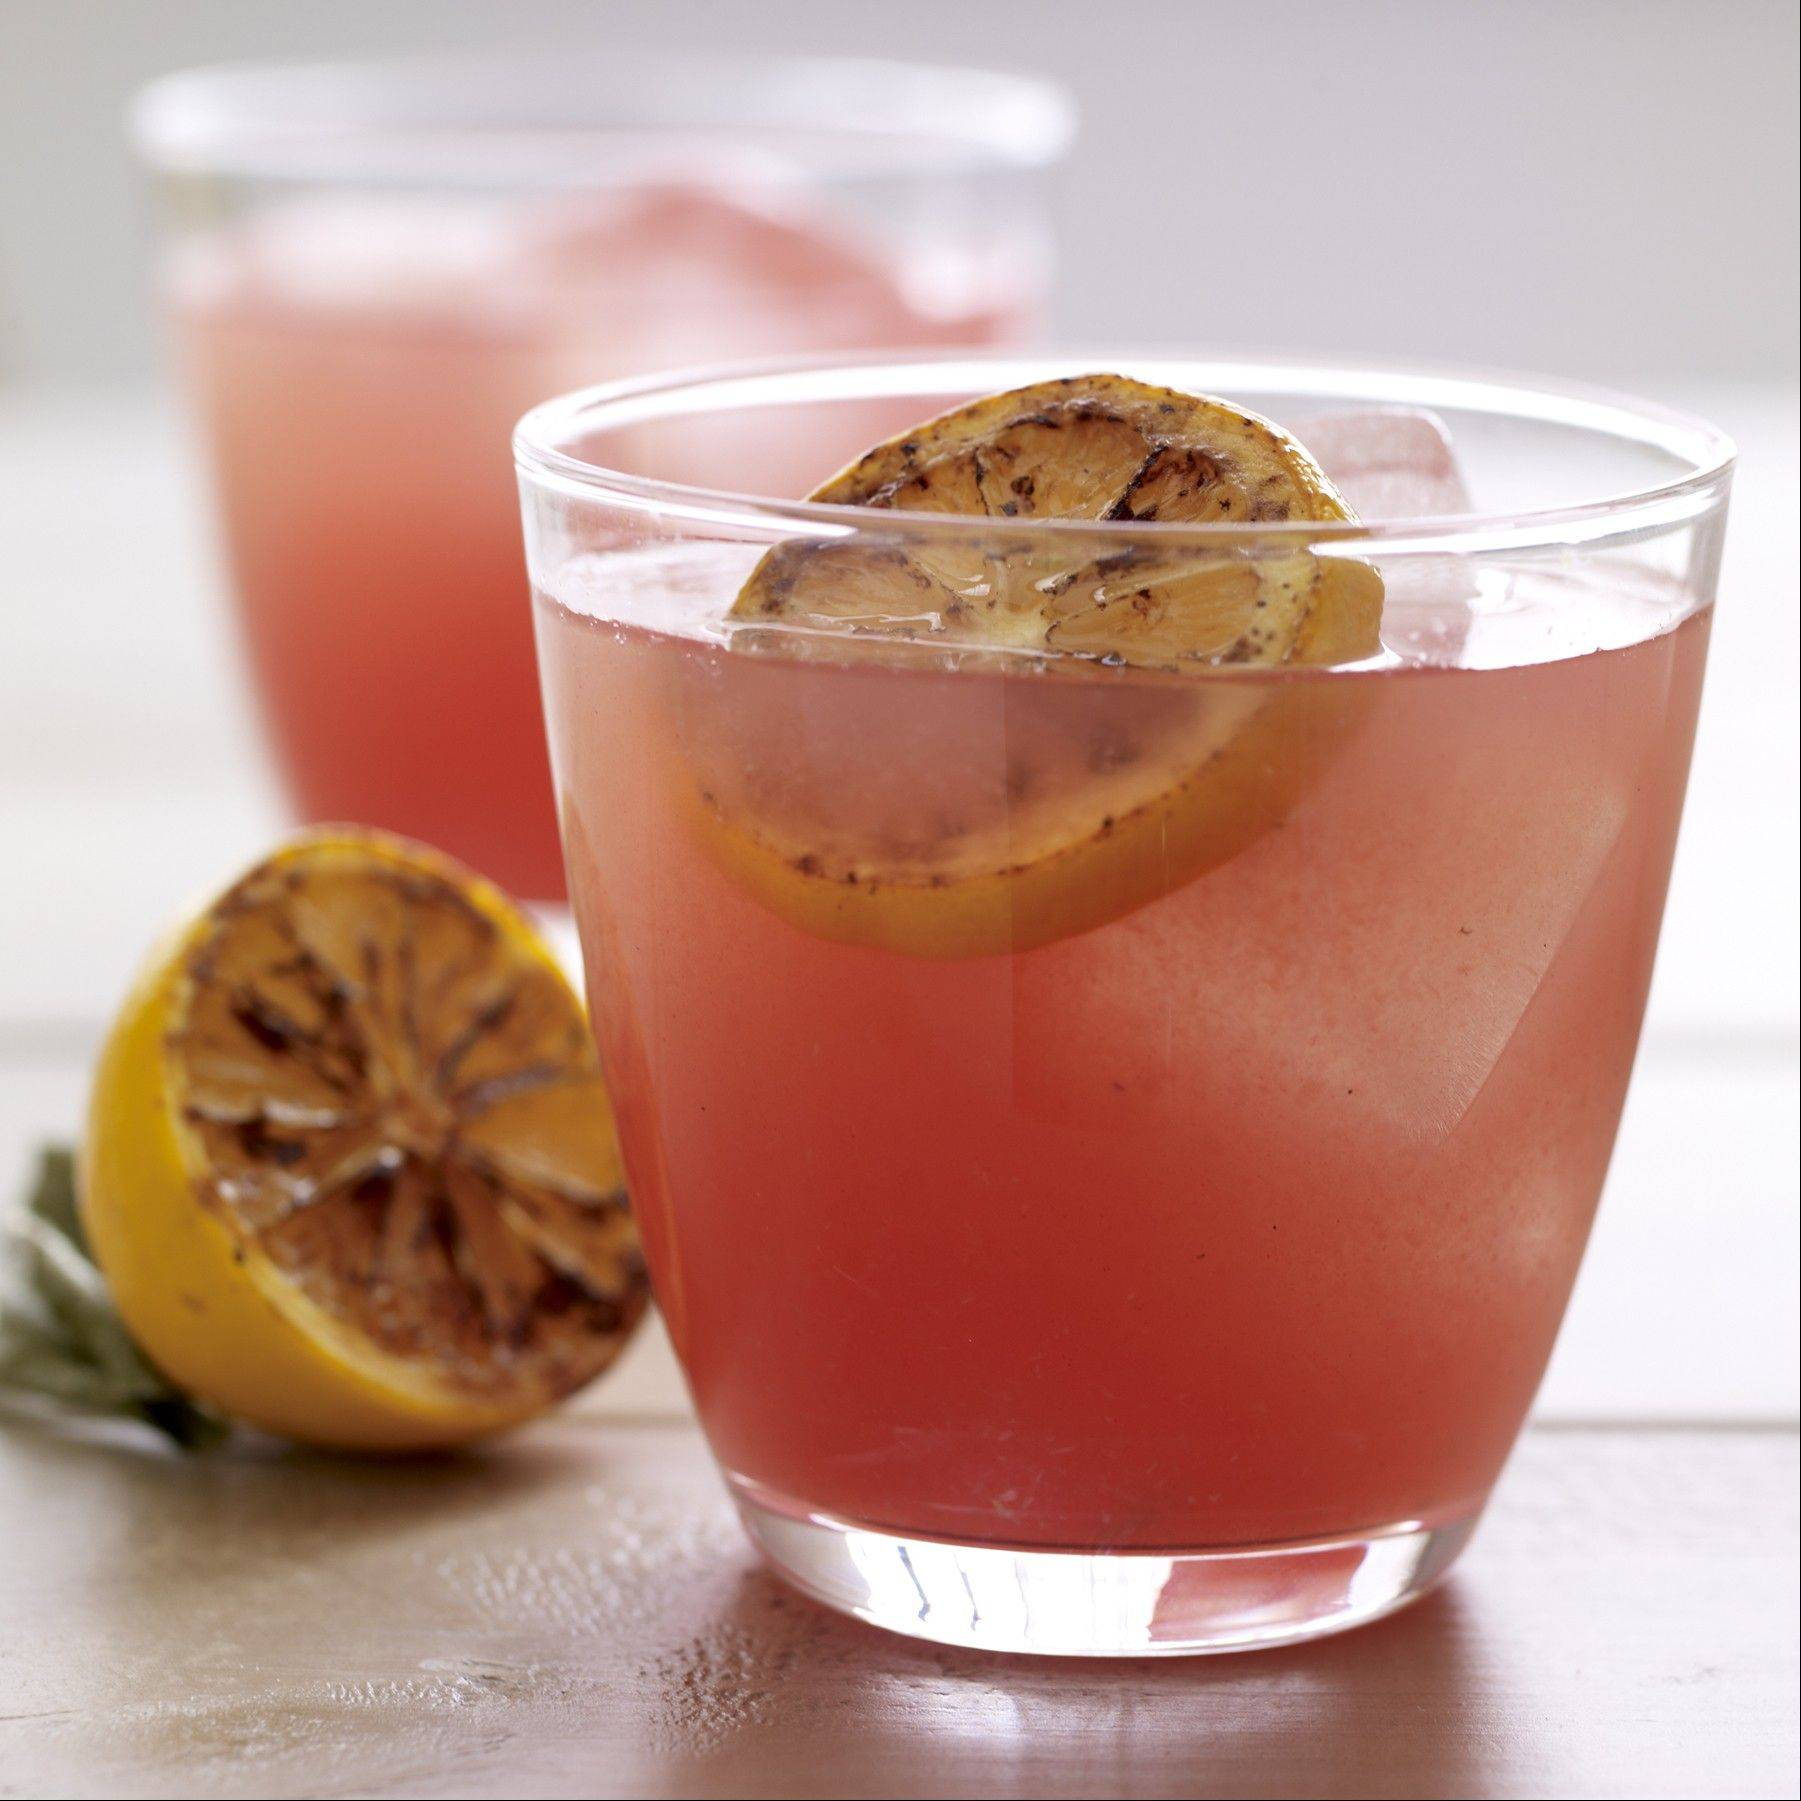 Grilled lemon adds a savory sensation to watermelon lemonade.